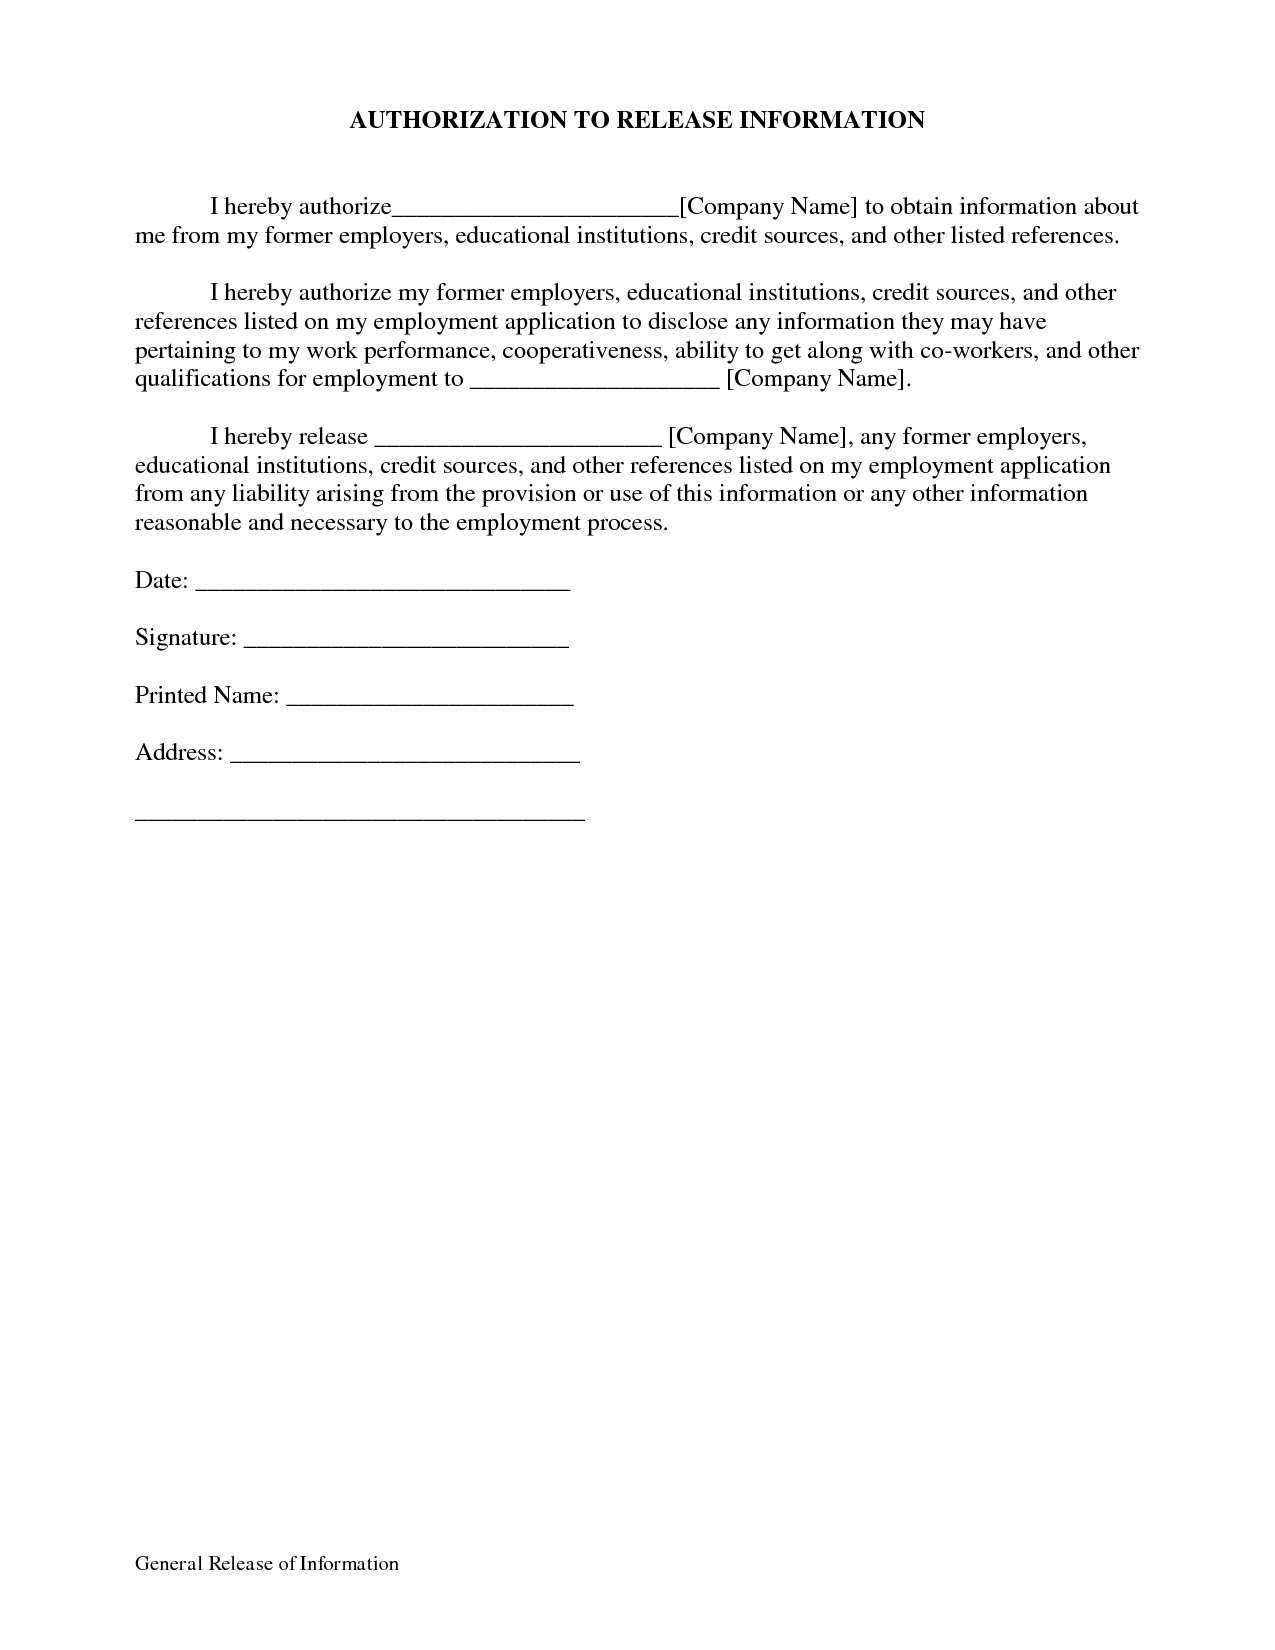 Hipaa Release form Template Beautiful General Release Of